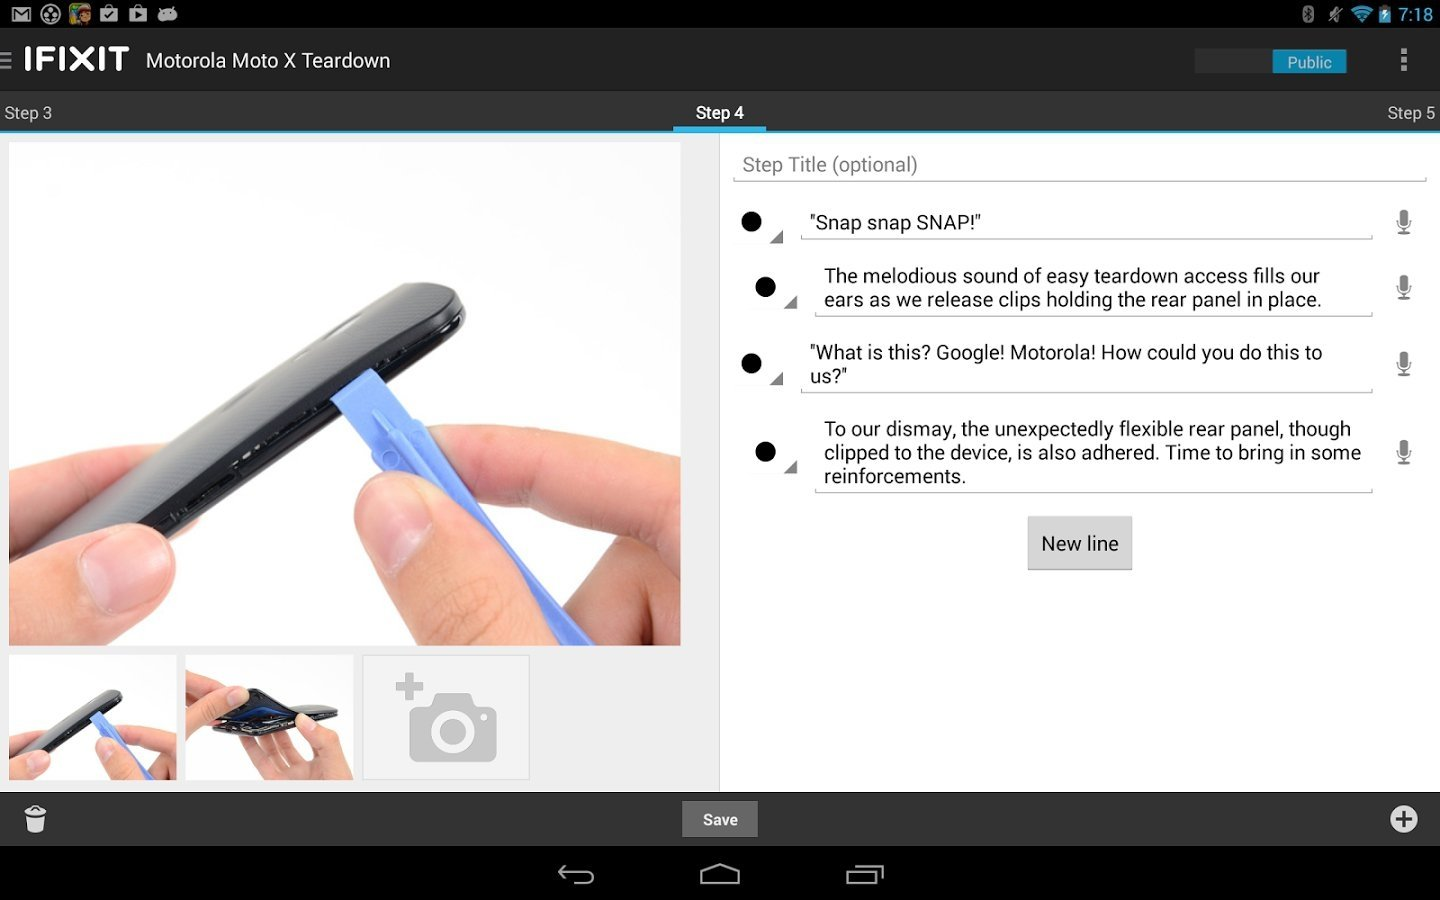 iFixit Android image 5